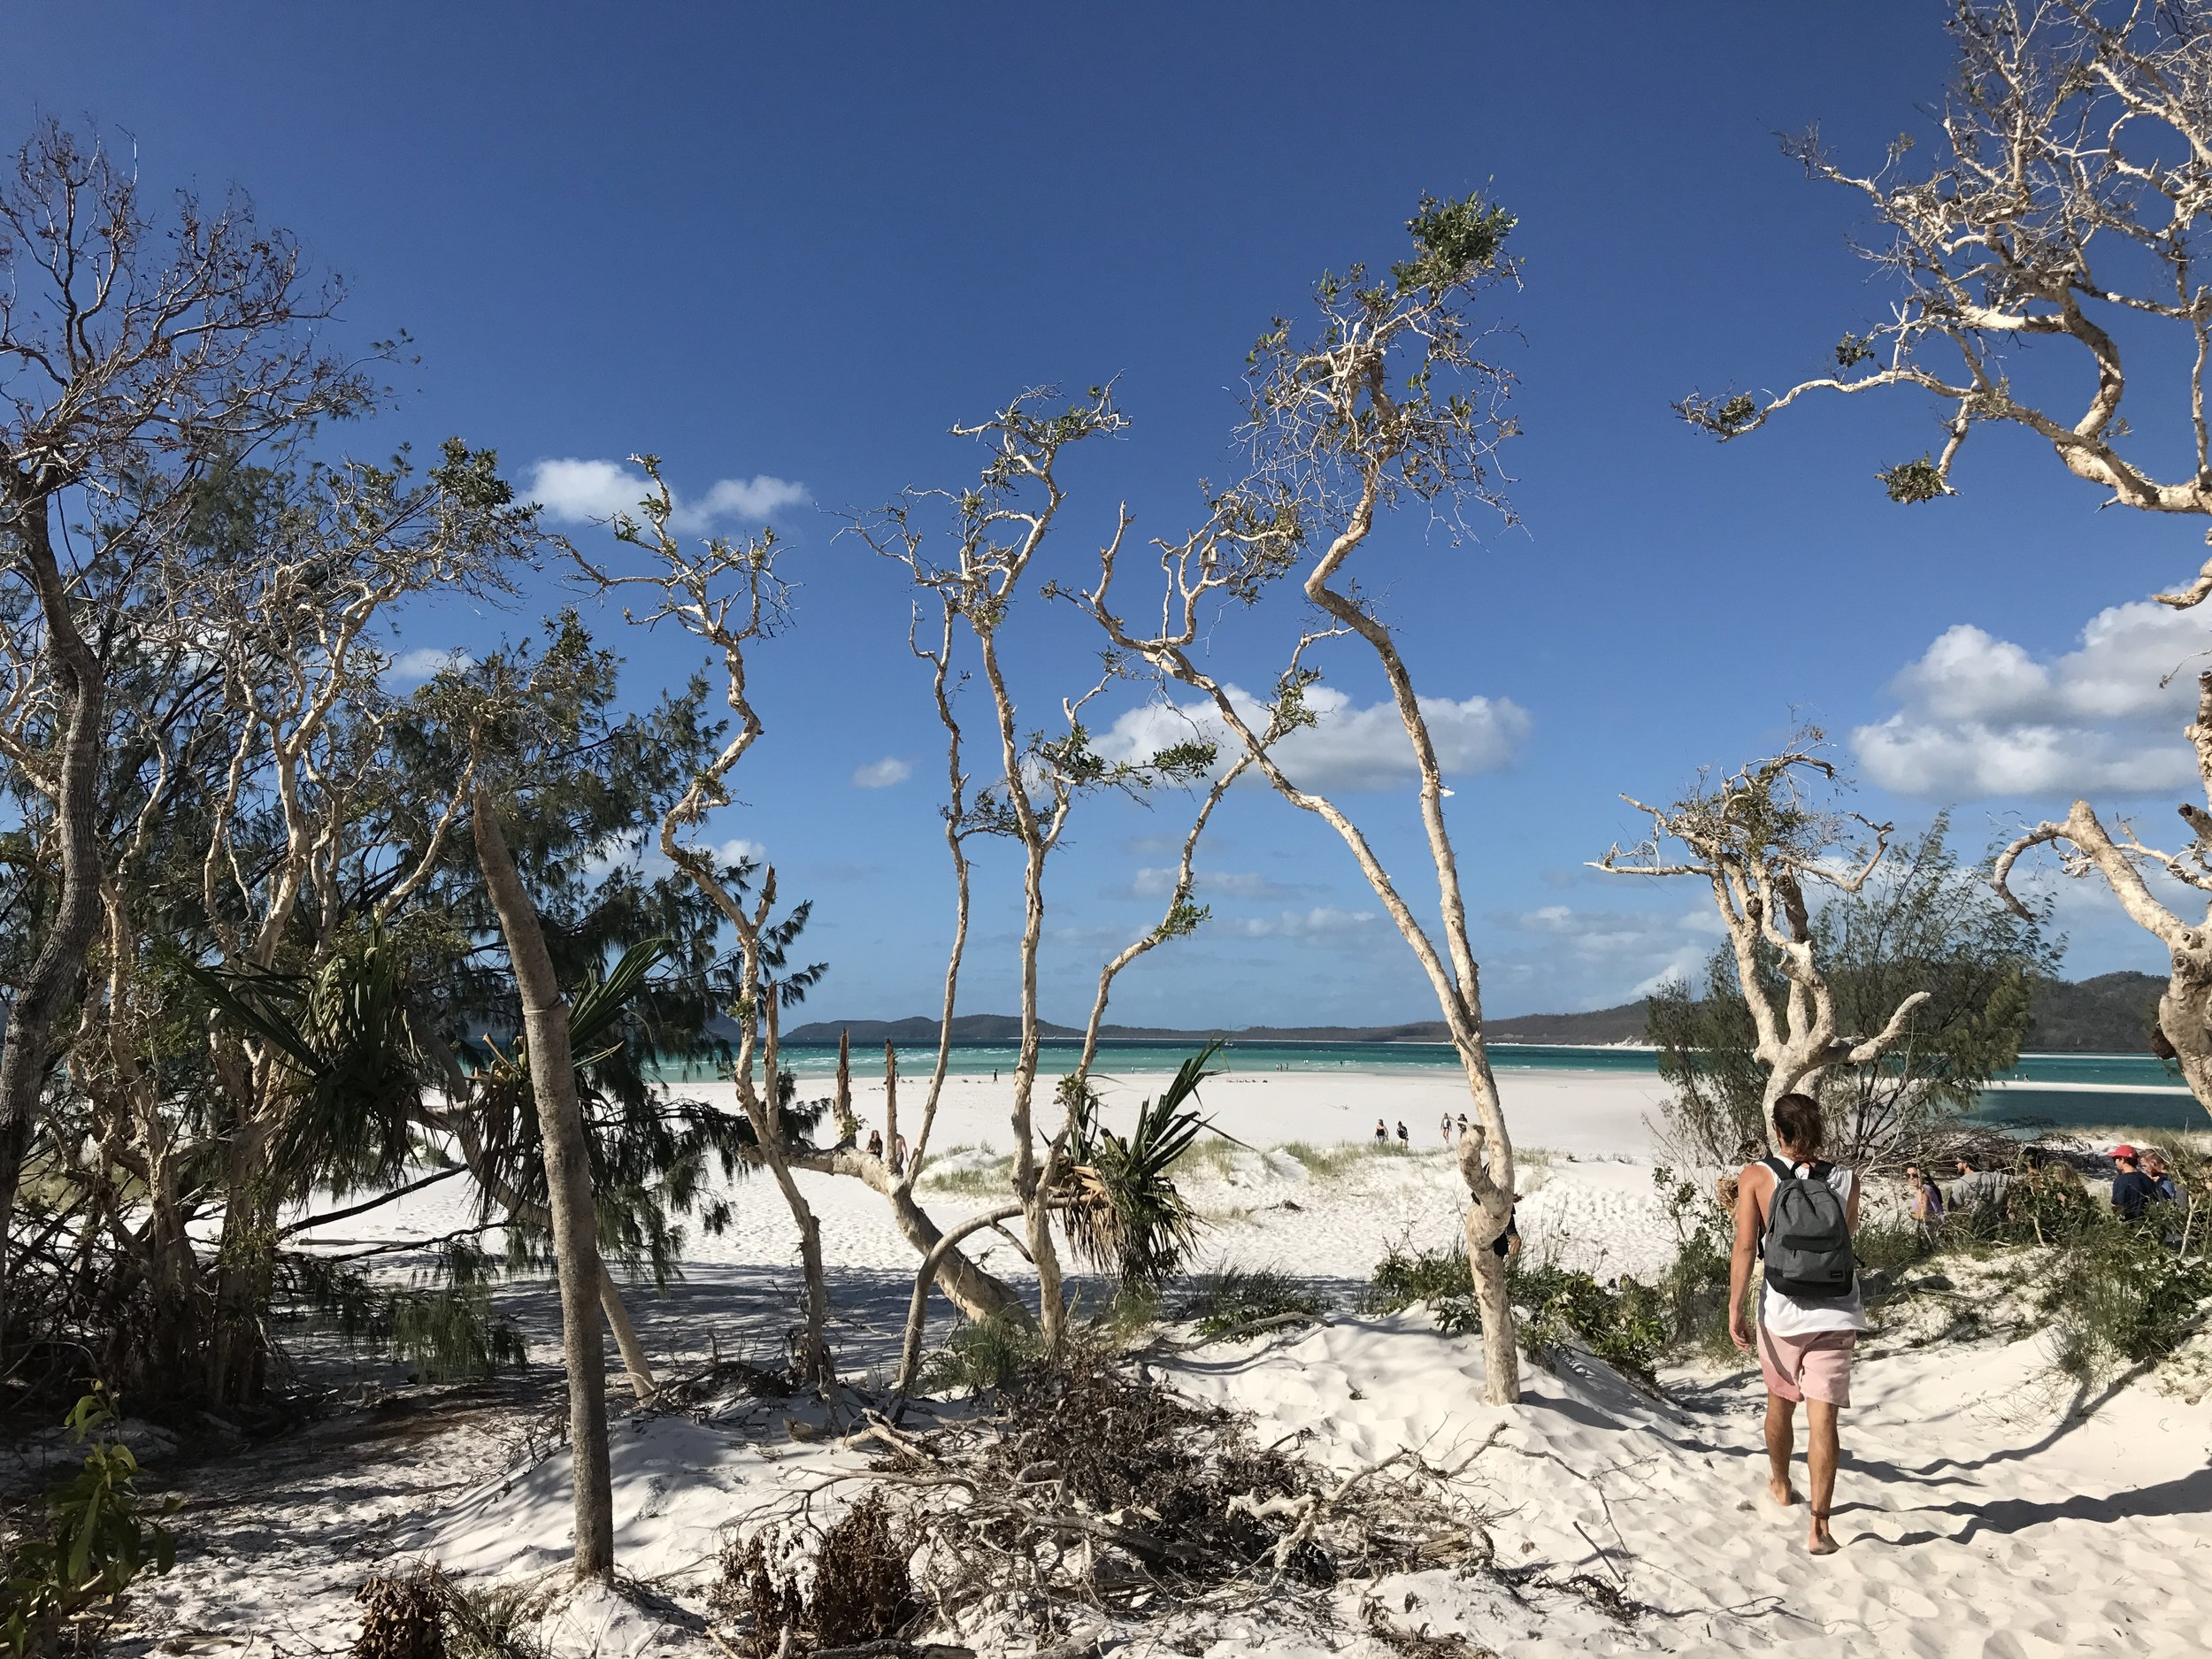 Bushwalking to Whitehaven Beach